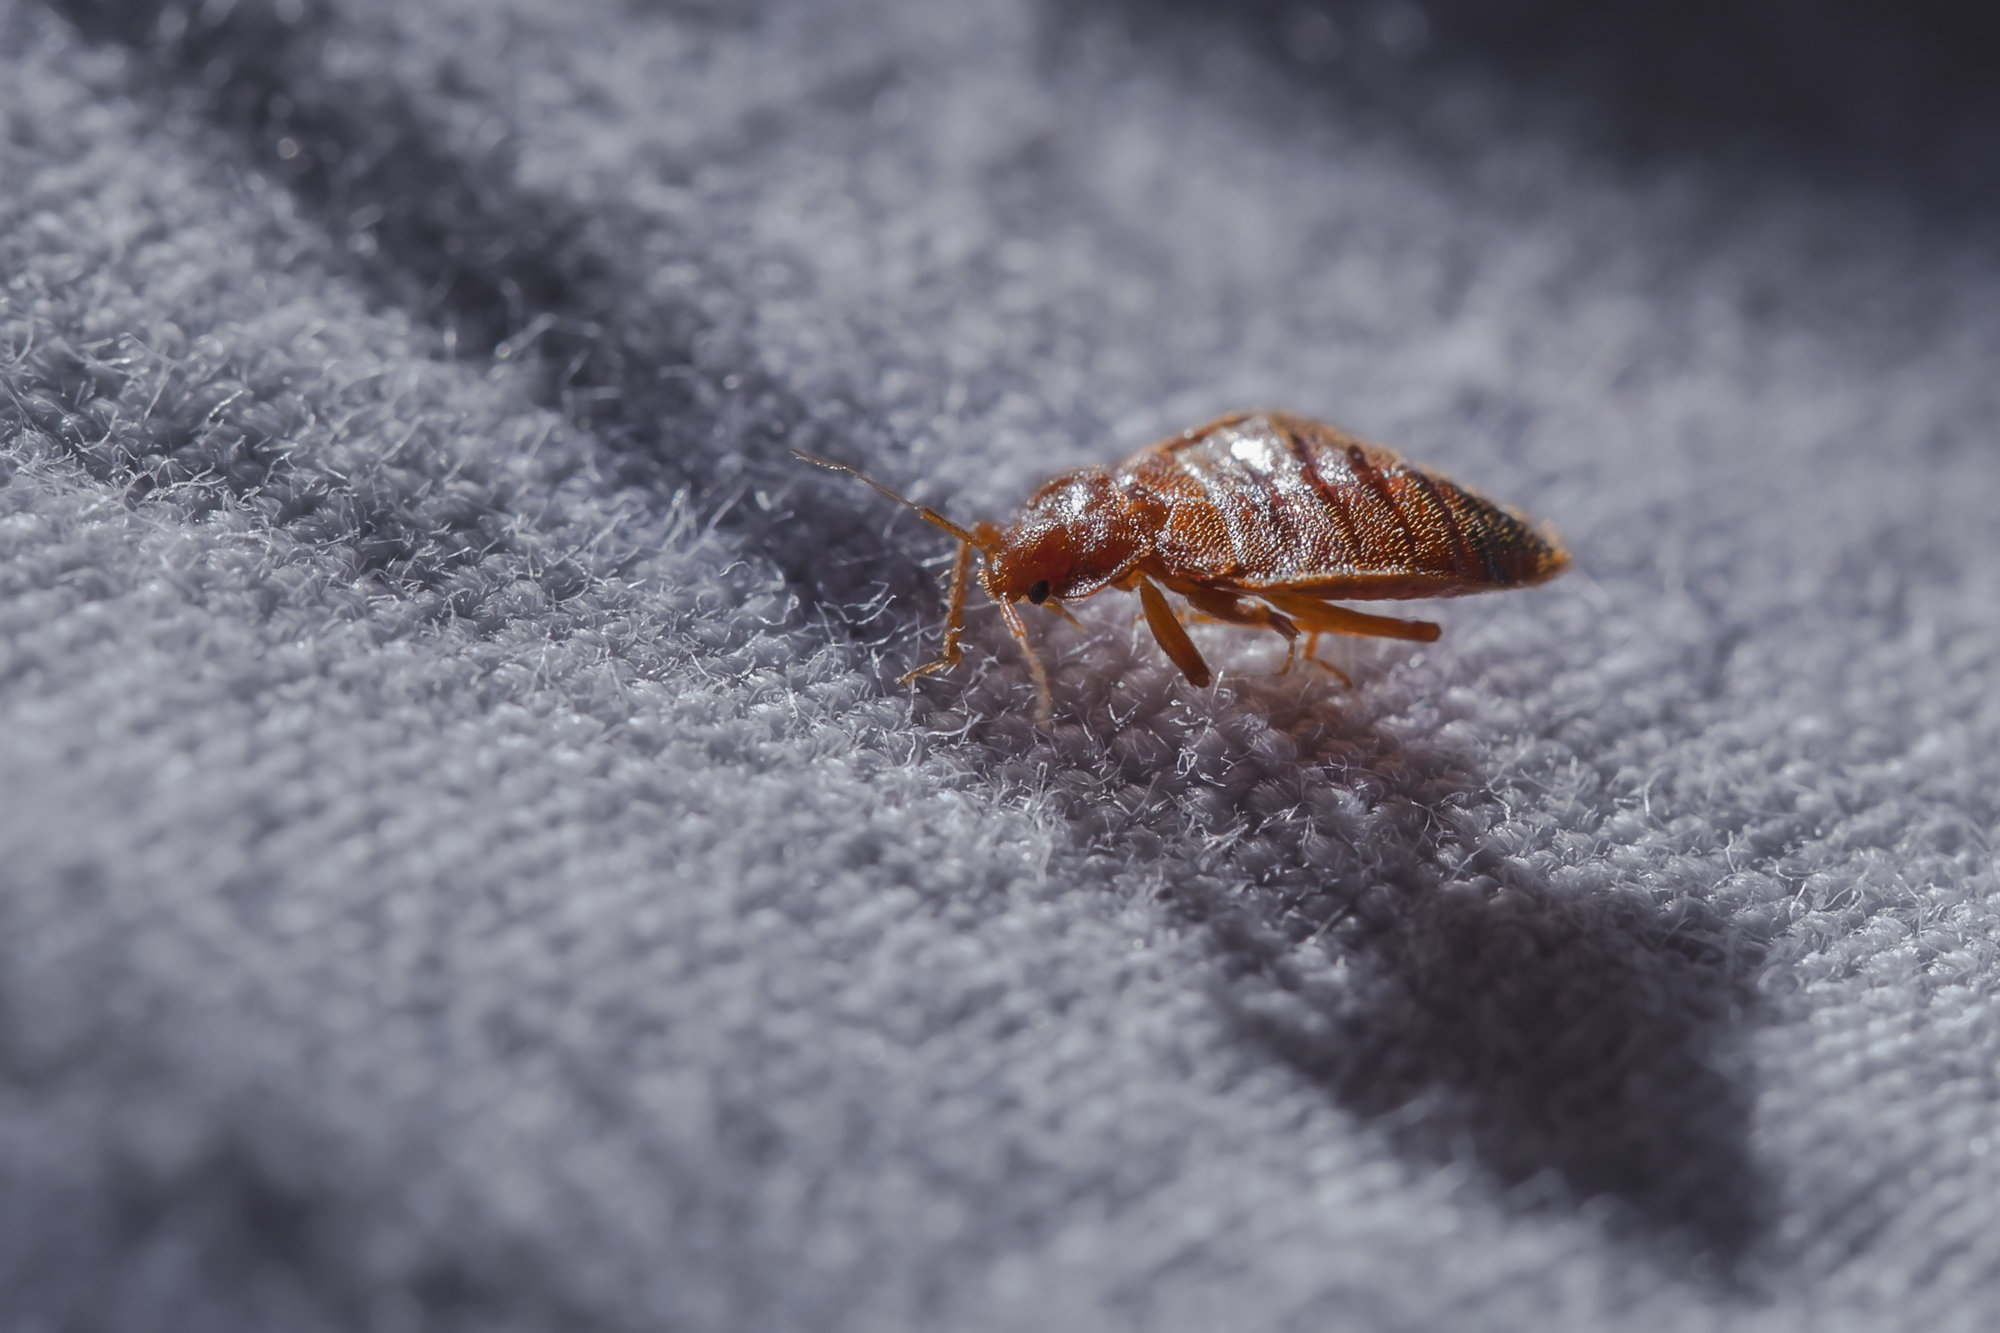 close up to a bed bug